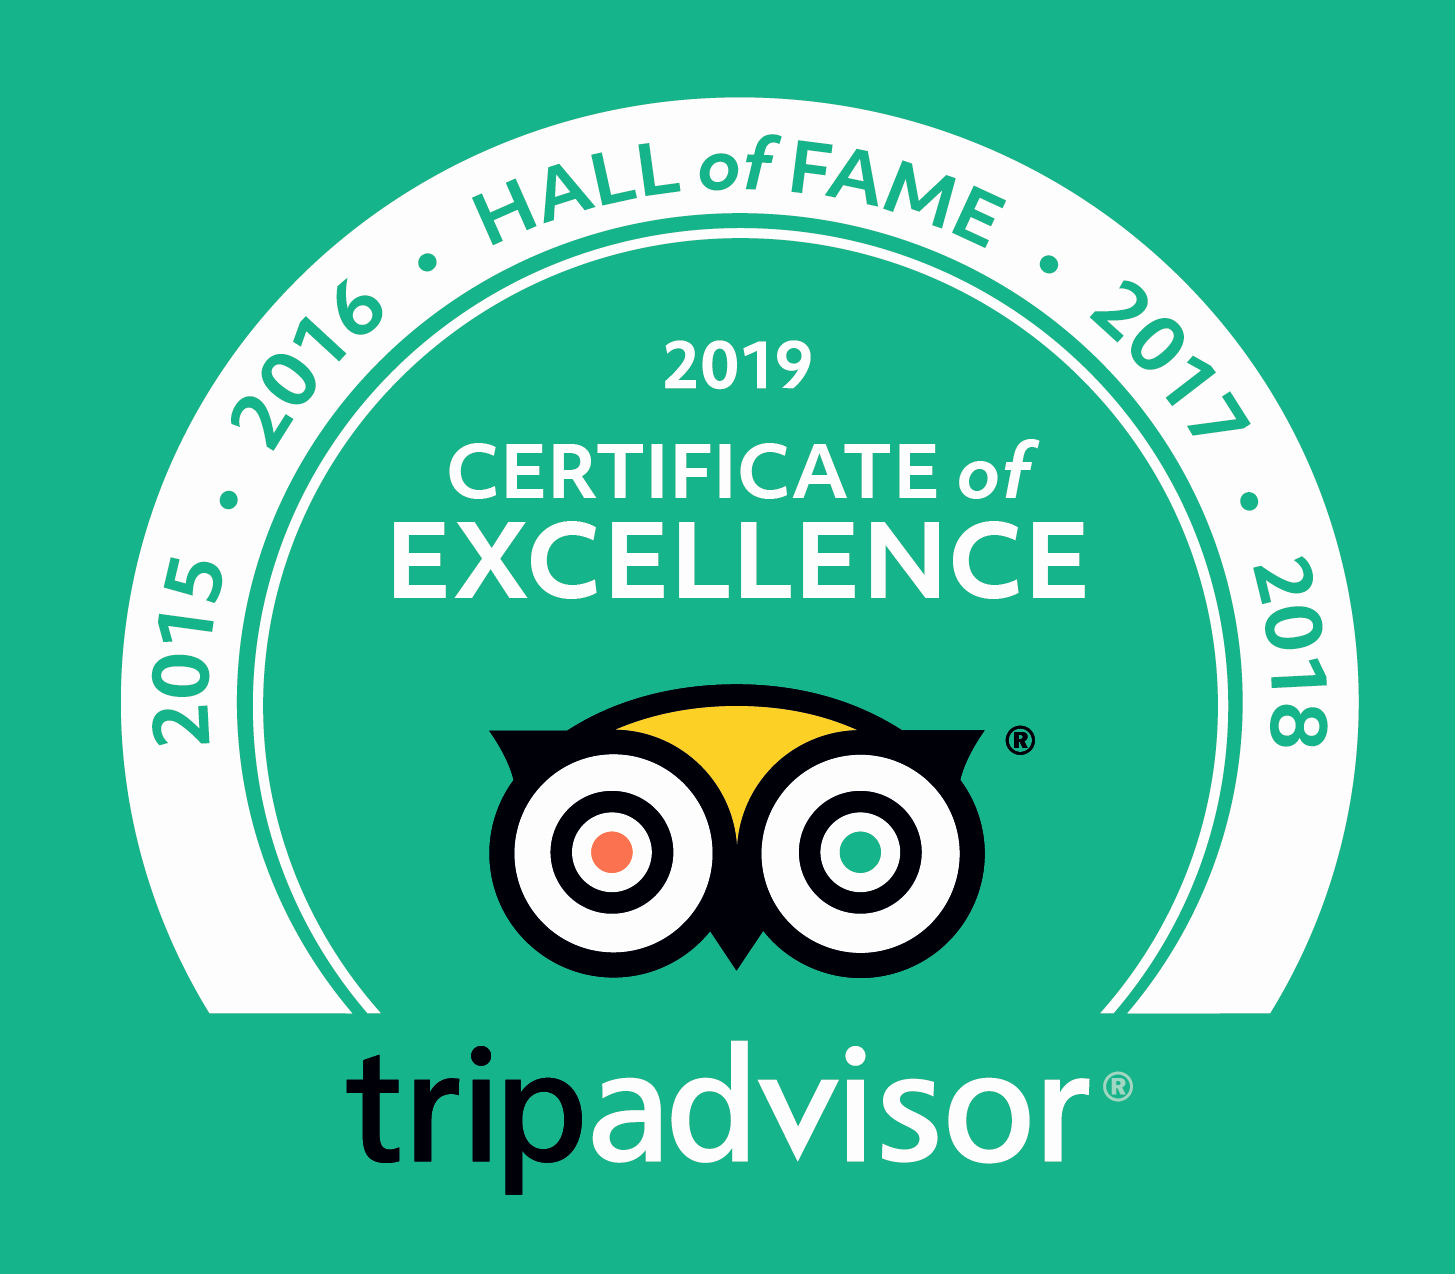 Hall Of Fame Certificate Awesome Trip Advisor Hall Of Fame 2019 the Cranleigh Boutique Hotel